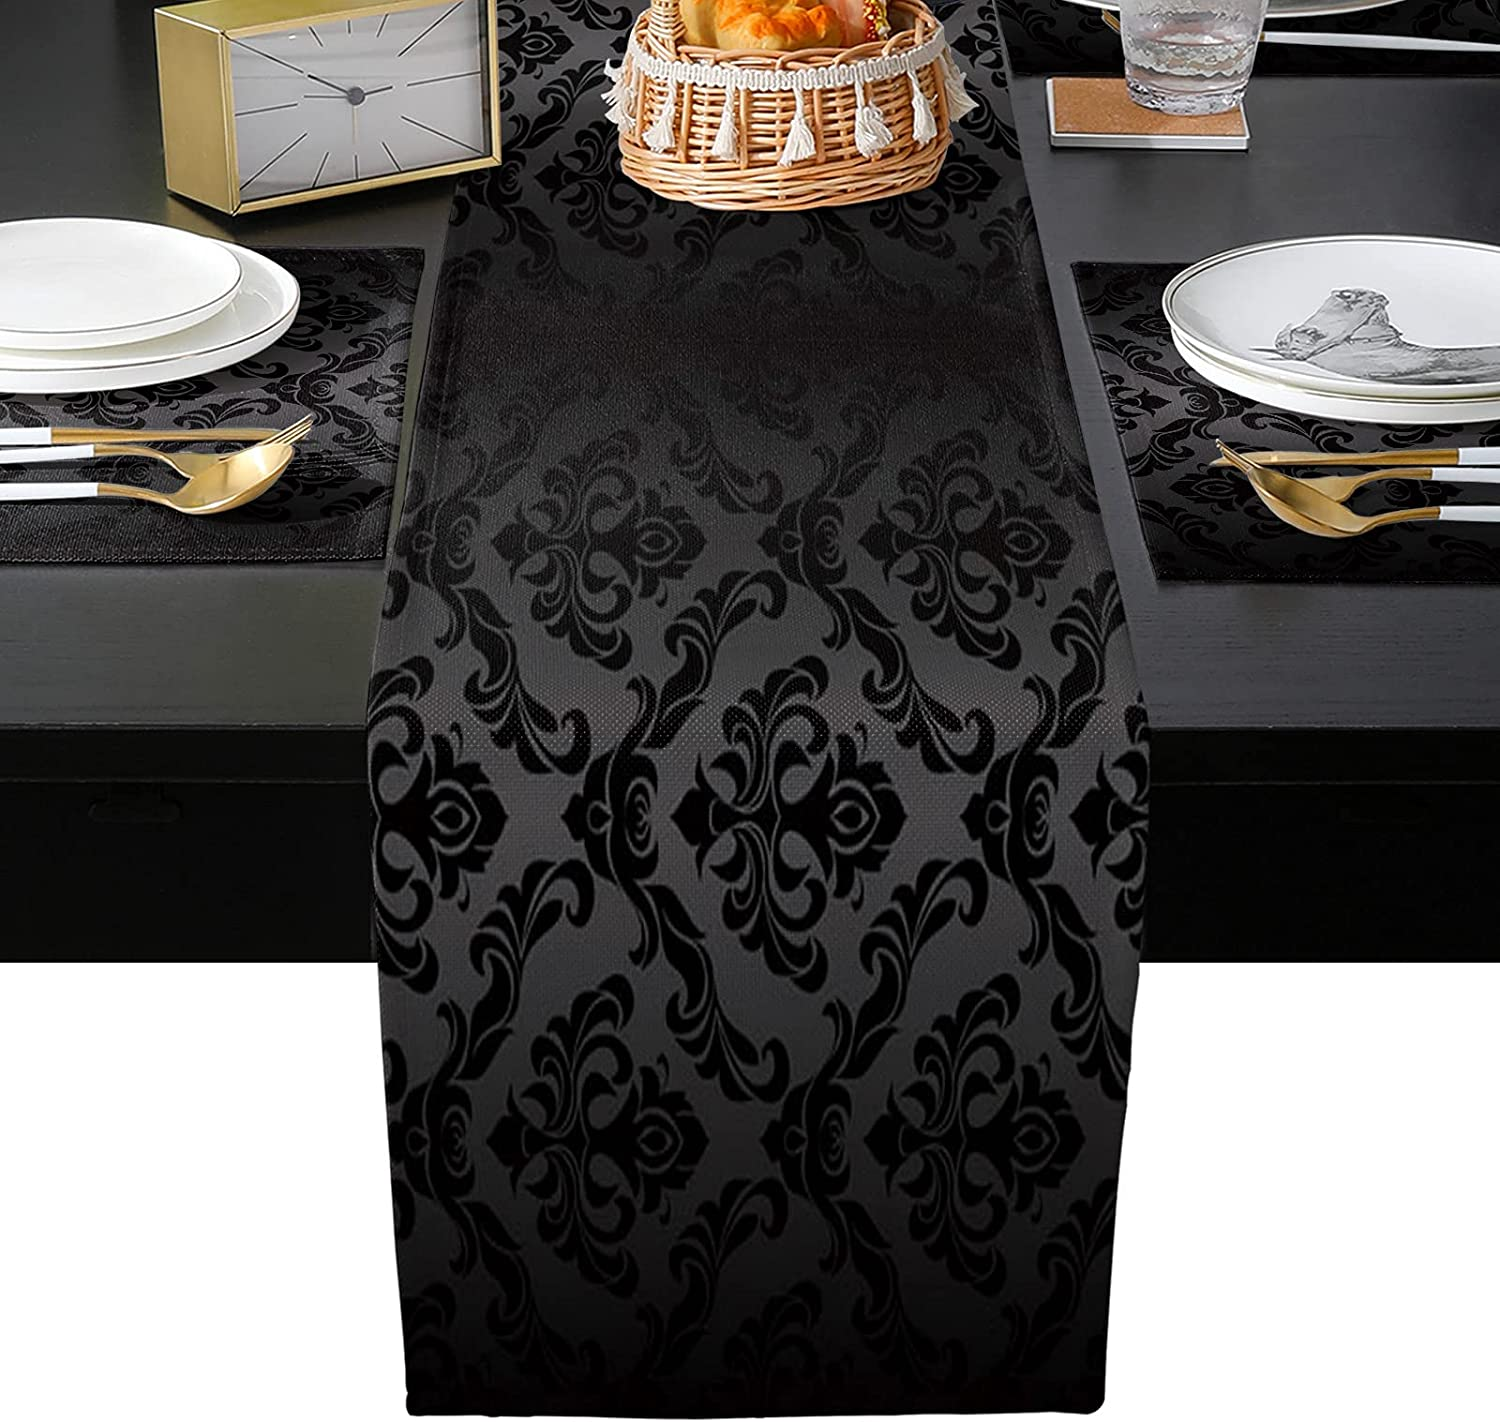 Memphis Mall OneHoney Black Mandala Pattern 67% OFF of fixed price Art and Table Se Placemats Runner